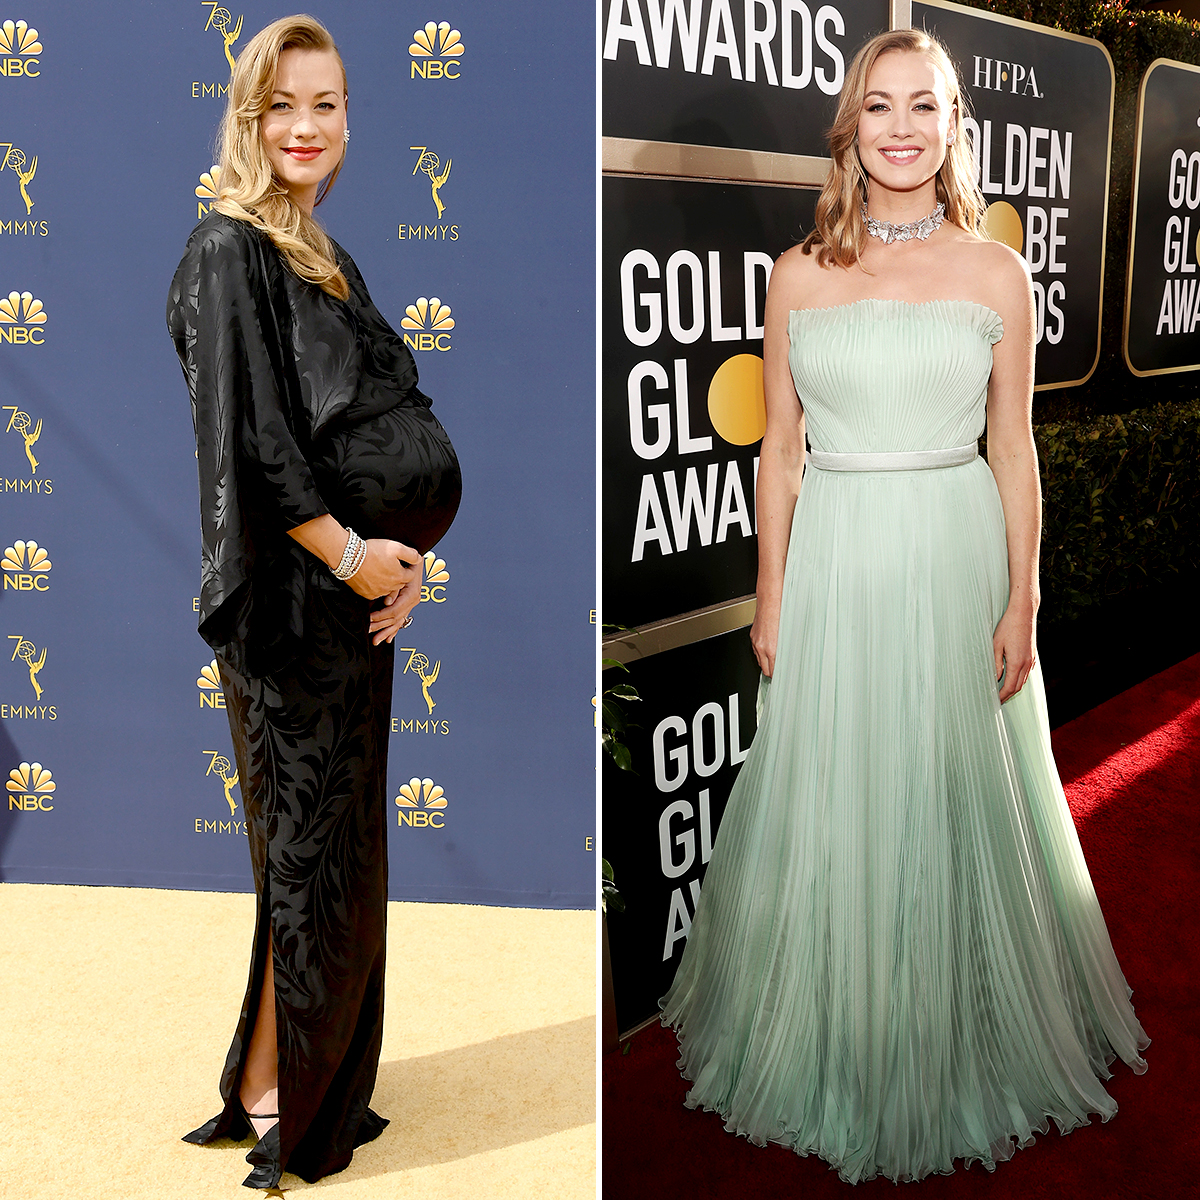 Yvonne-Strahovski-post-baby-body - The 36-year-old The Handmaid's Tale actress welcomed her first child, a son, with husband Tim Loden on October 15, 2018 — then wowed less than three months later on the red carpet at the January 6 Golden Globes. As the Dexter alum has said previously, she prefers to skip the gym and do outdoor activities like hiking, running and swimming to keep herself fit.